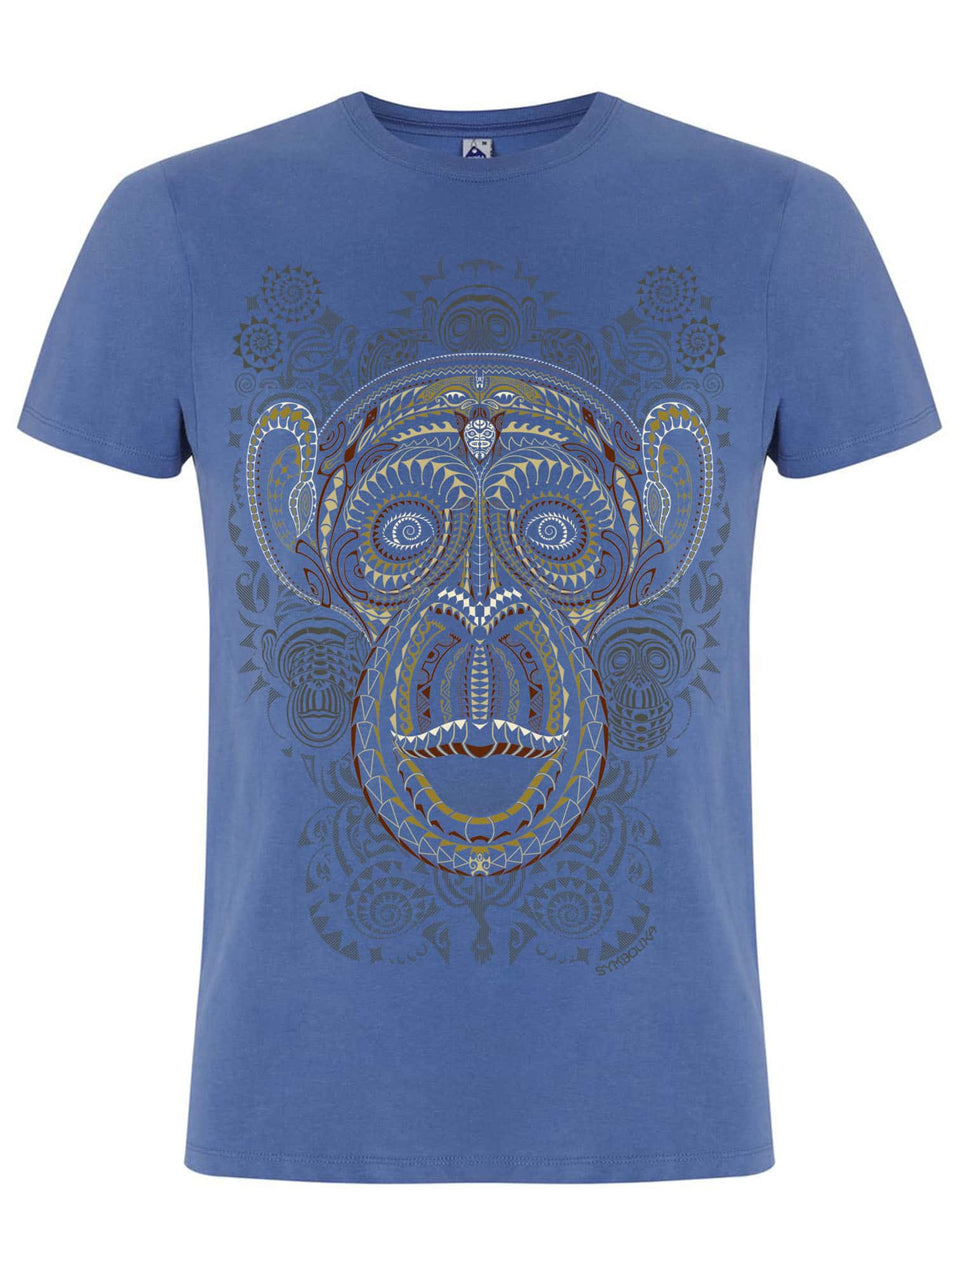 Ta Wise Monkeys  Made To Order Men T-Shirt - Faded Denim